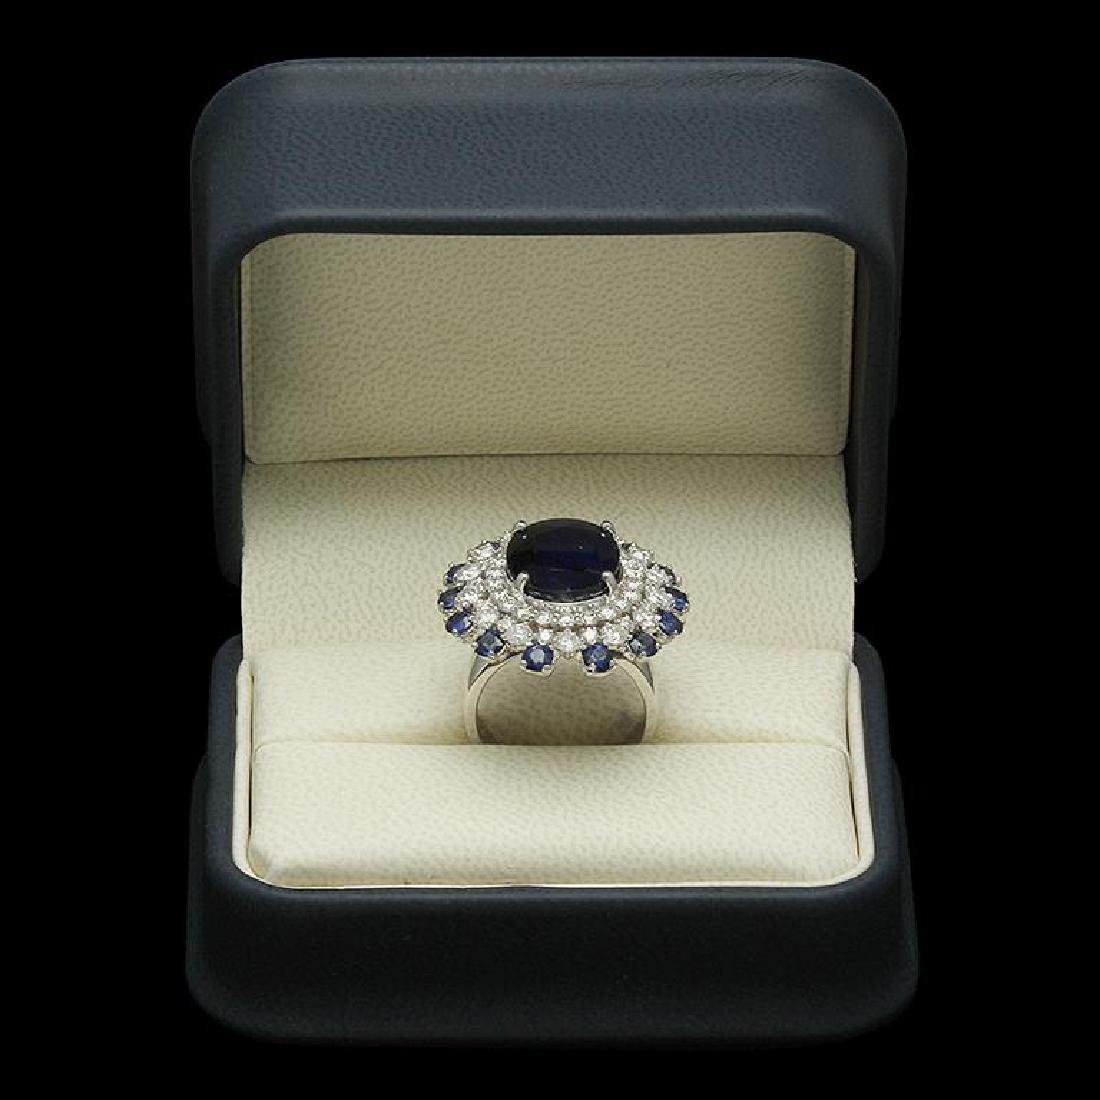 14K Gold 9.97ct Sapphire 2.31ct Diamond Ring - 3